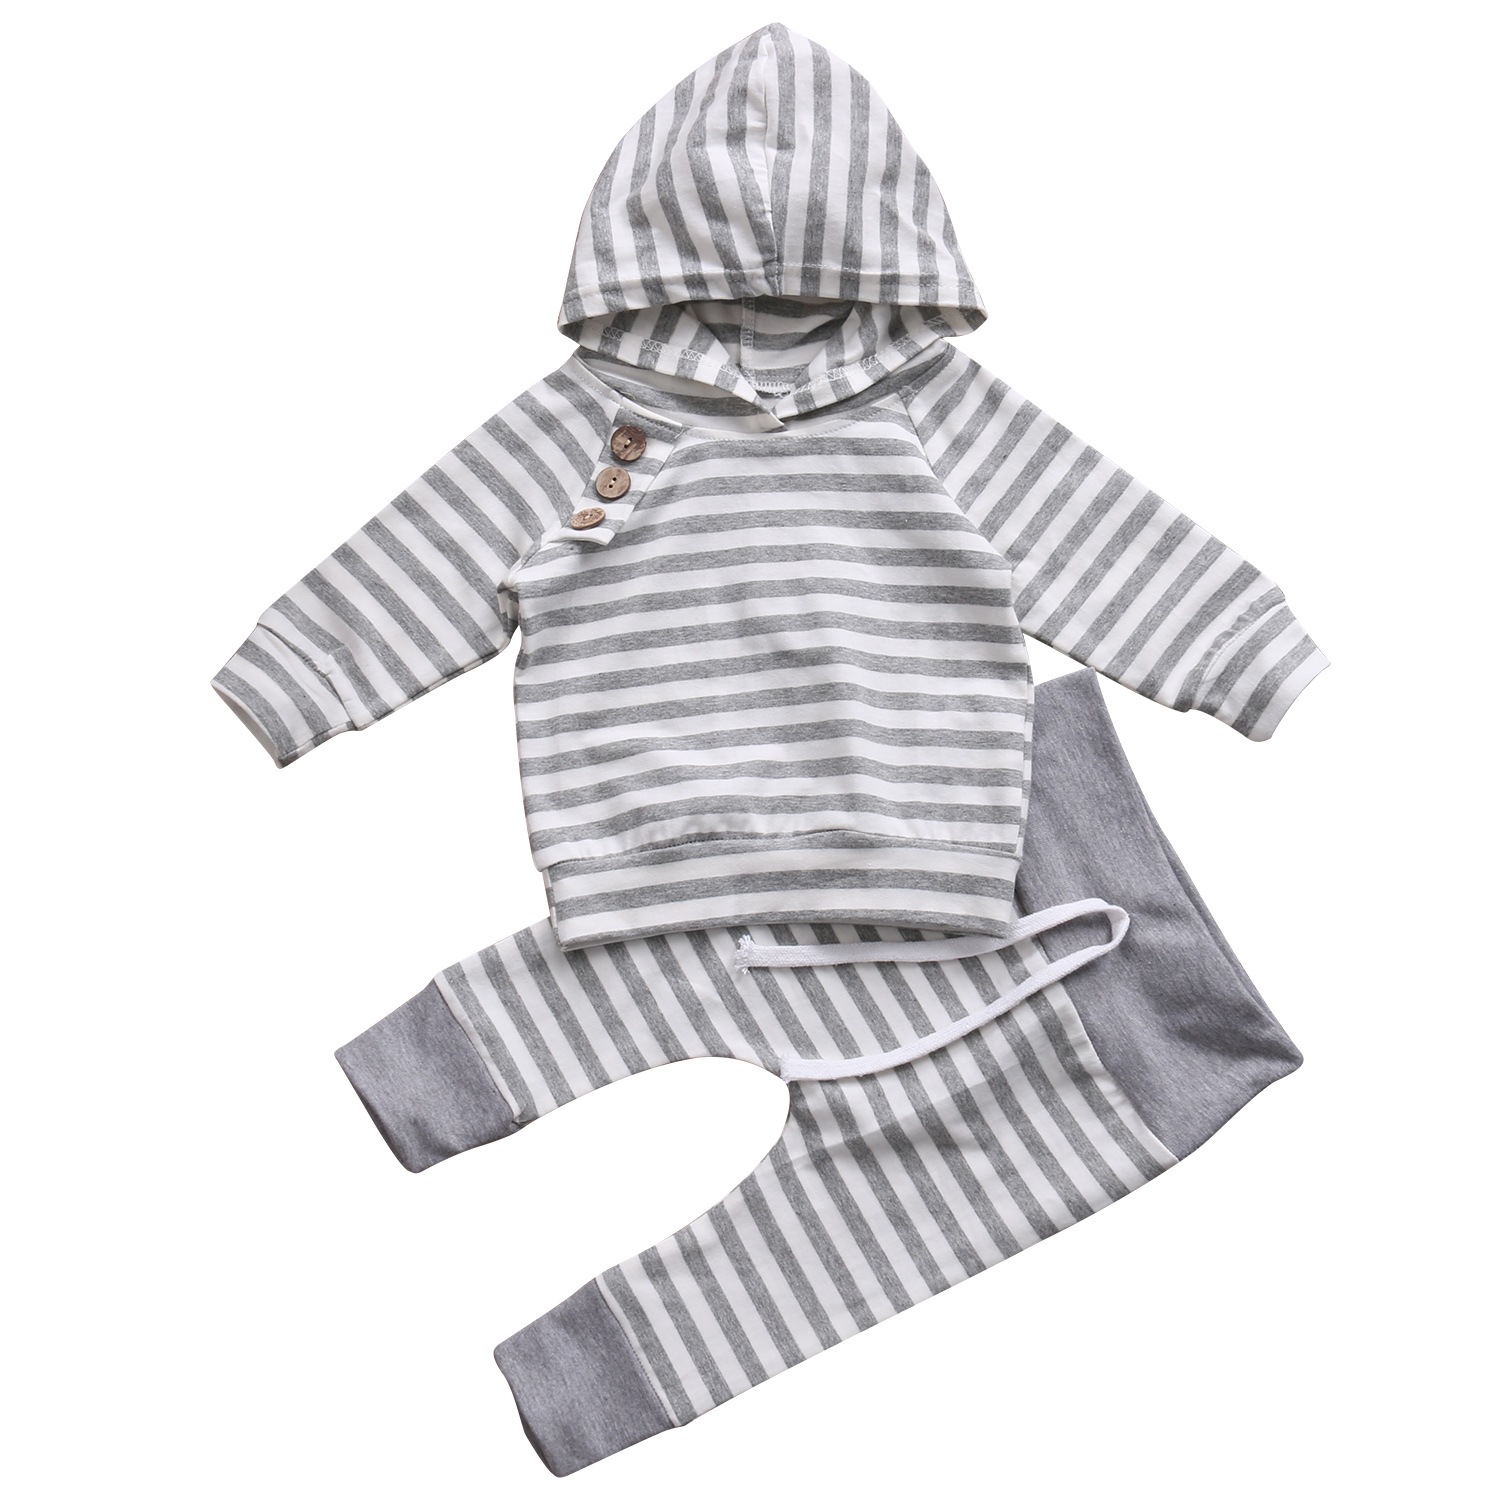 Toddler Newborn Infant Kids Baby Boy Girl Hoodie Tops Long Sleeve Shirt Pants Striped Outfit 2Pcs Set Clothes 2Pcs Set